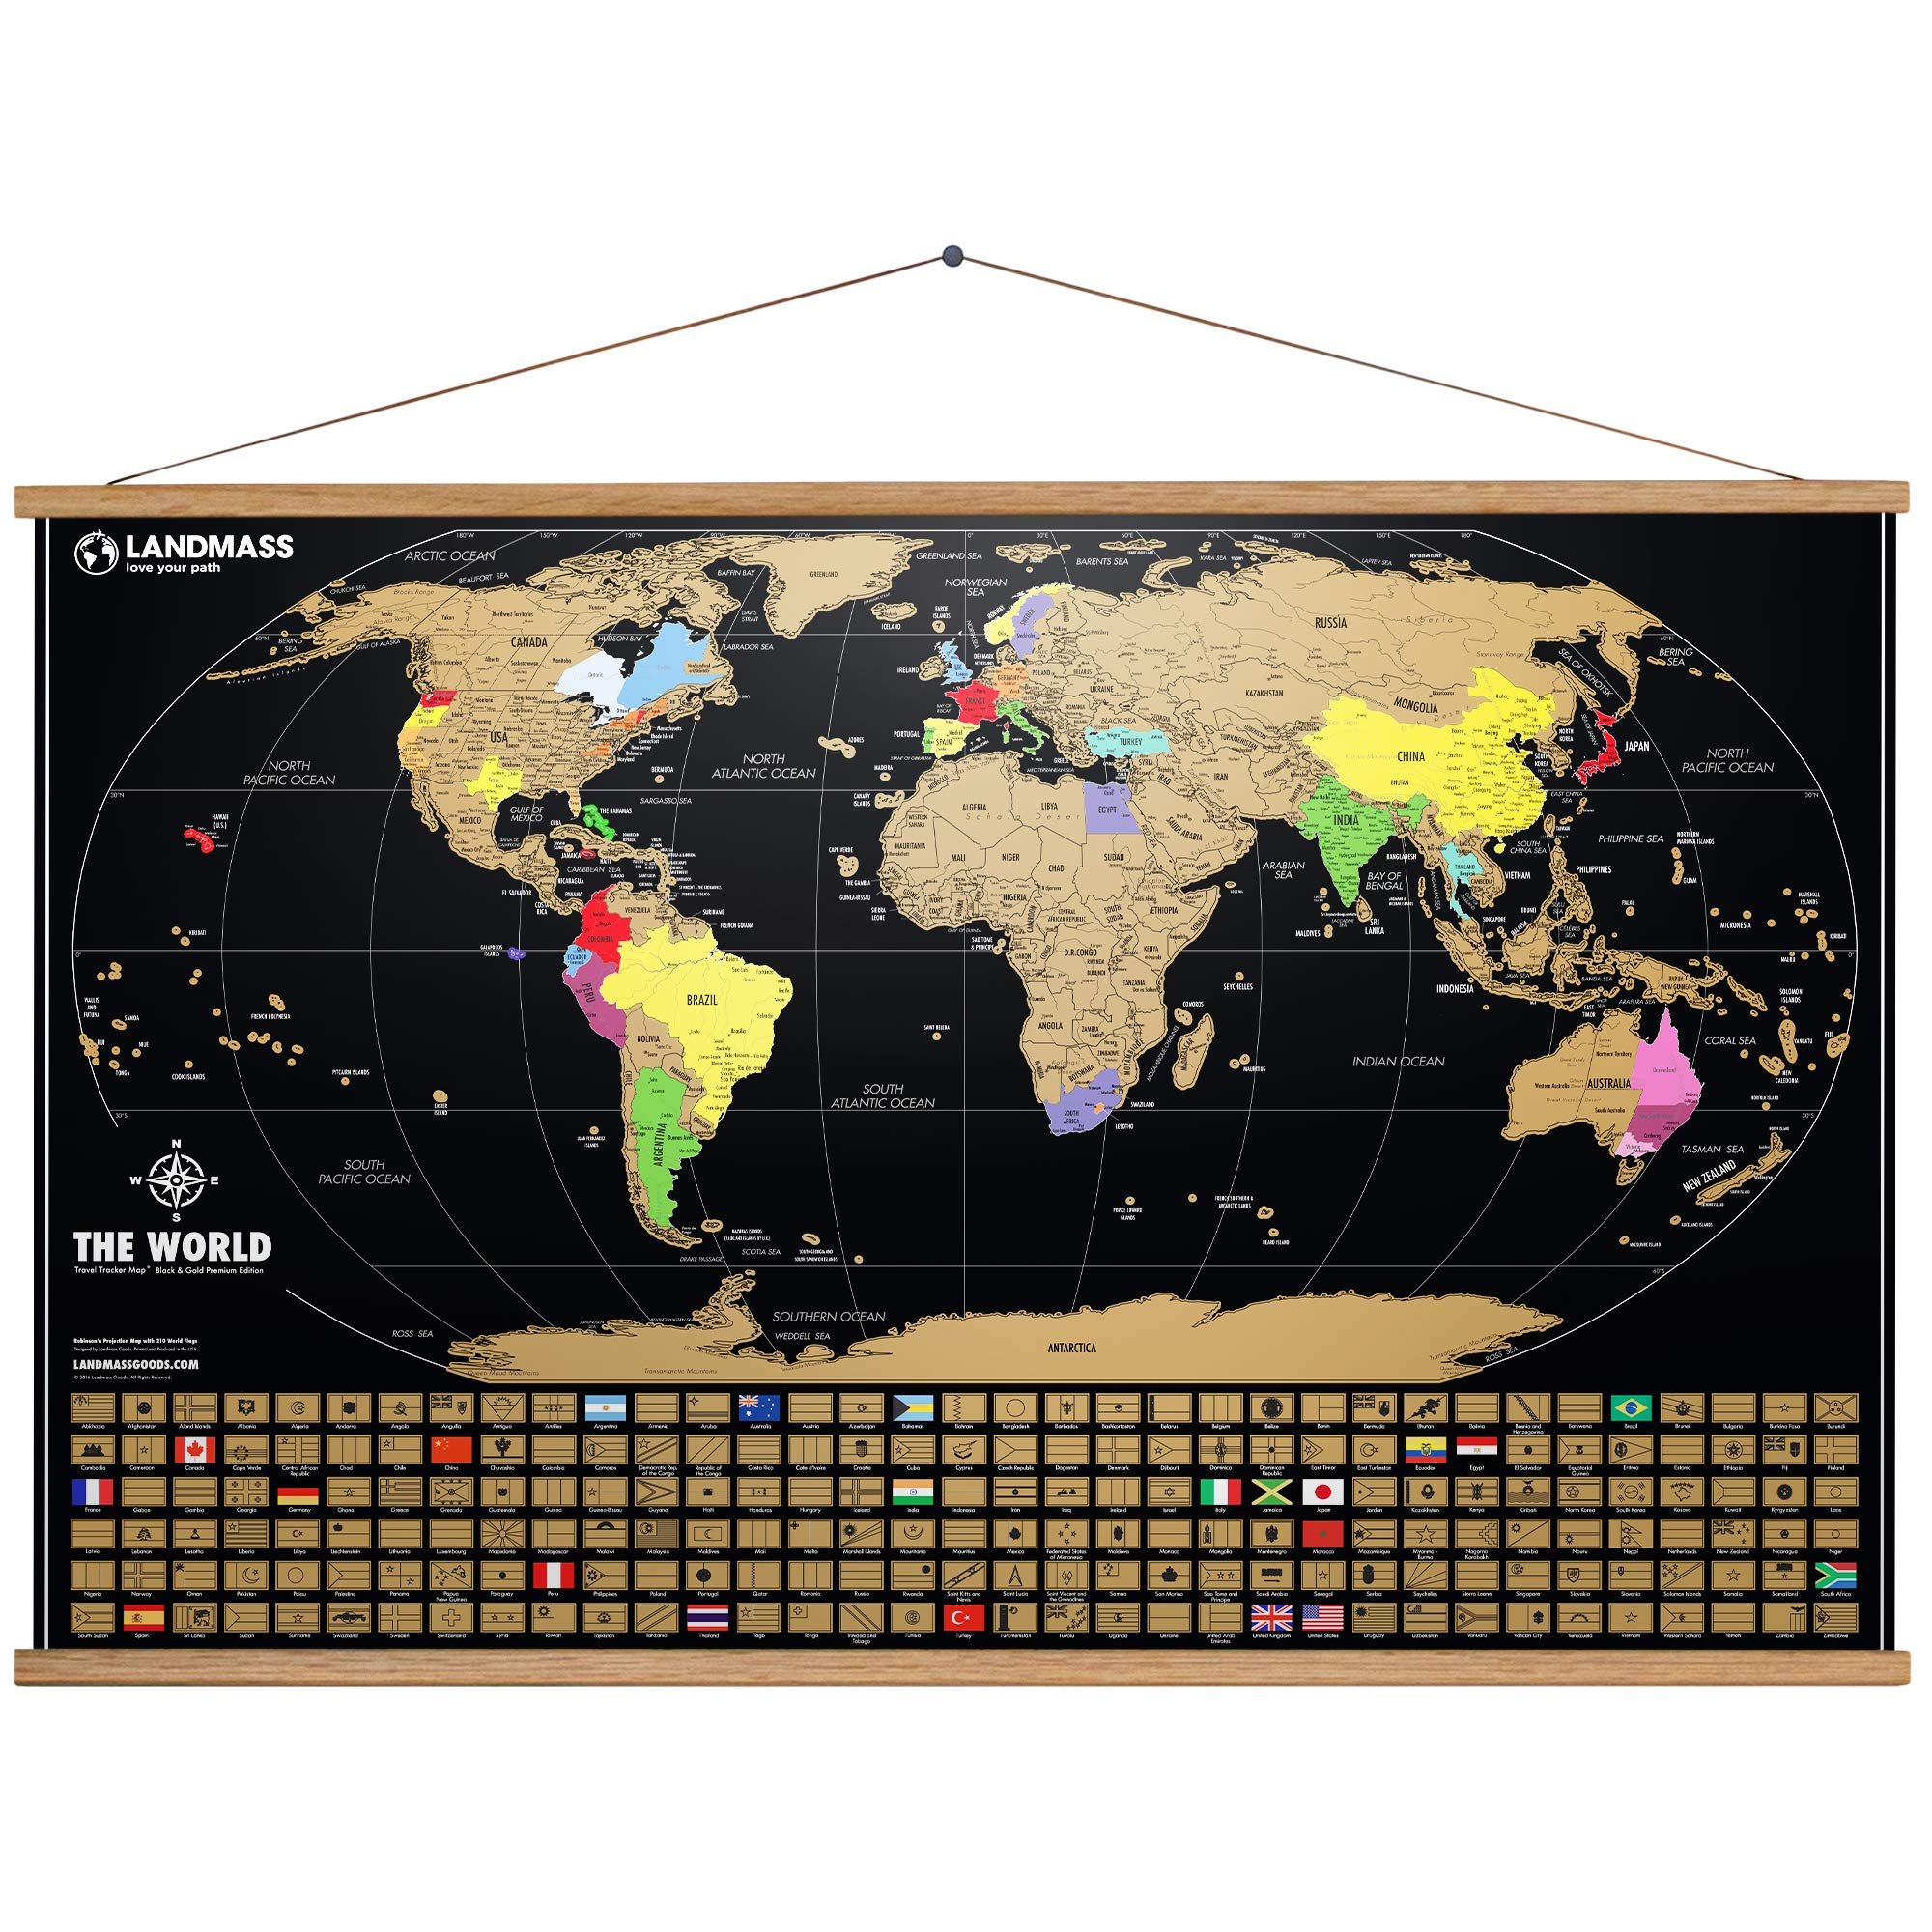 Landmass Extra Large Scratch Off Map of The World with Frame - 24 x 36 World Map Poster - Made in The USA - Travel Map - 36 Inch Wide Frame Included - The Perfect Gift for Travelers by Landmass Goods